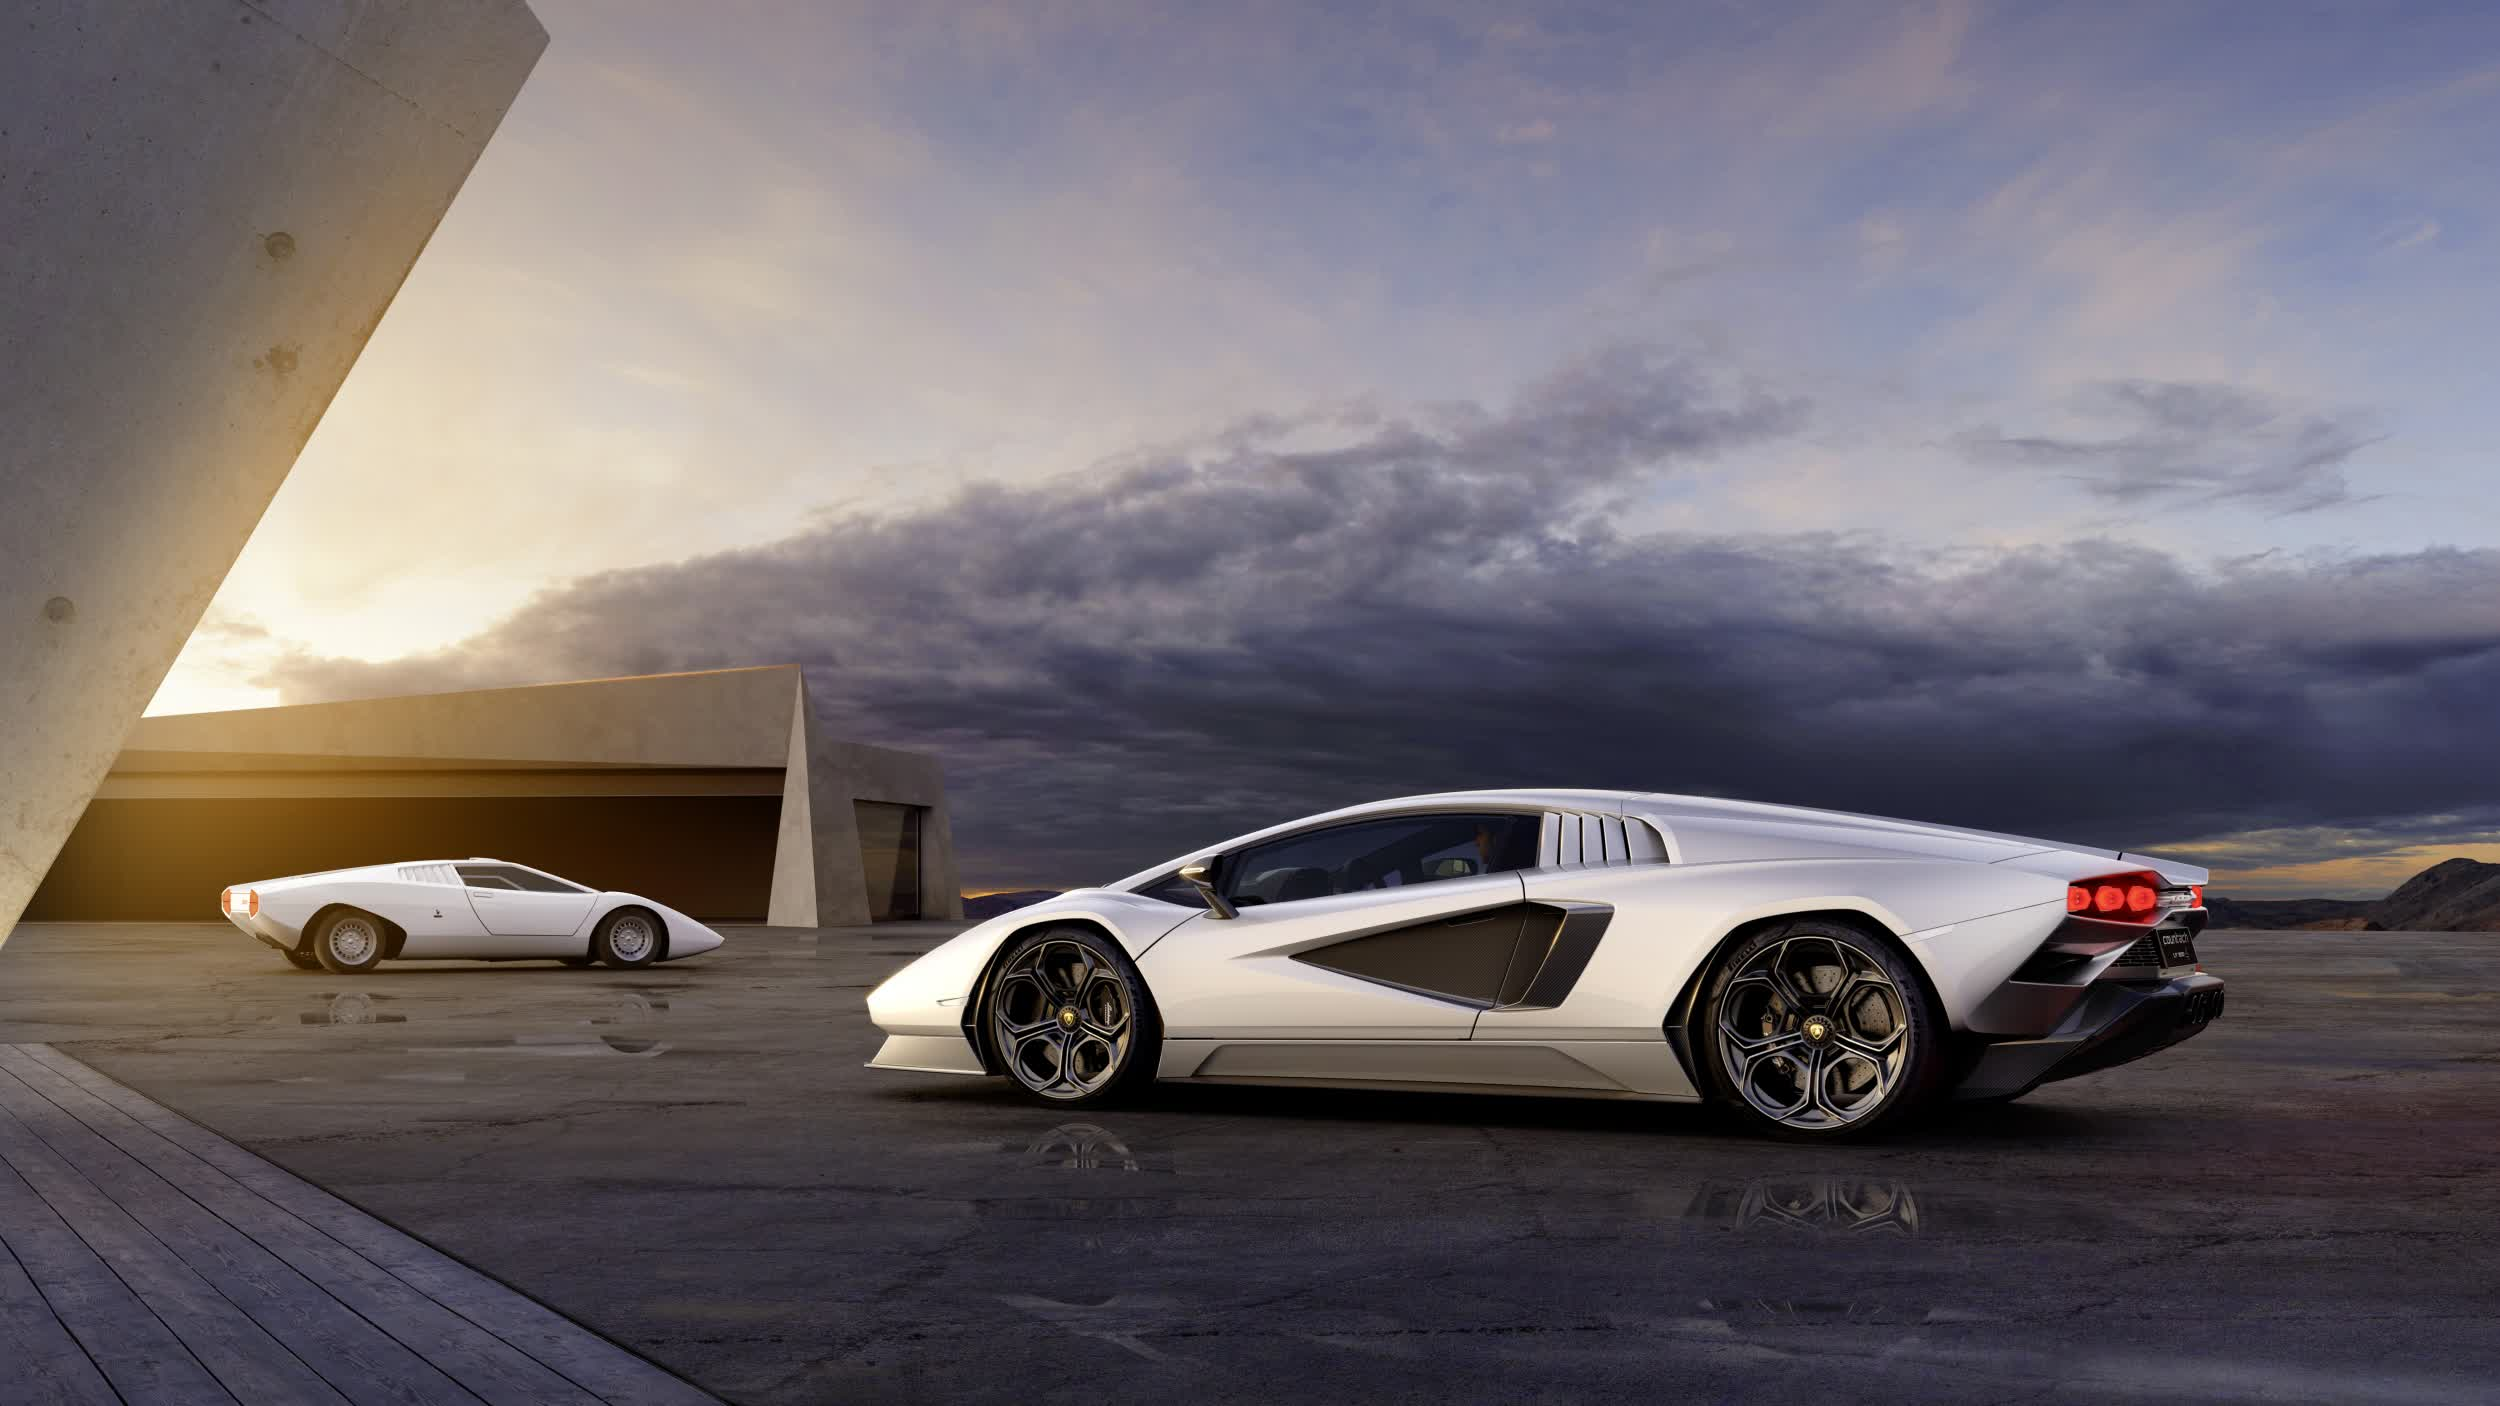 Lamborghini is bringing back the Countach as a limited-edition hybrid, and it's brilliant